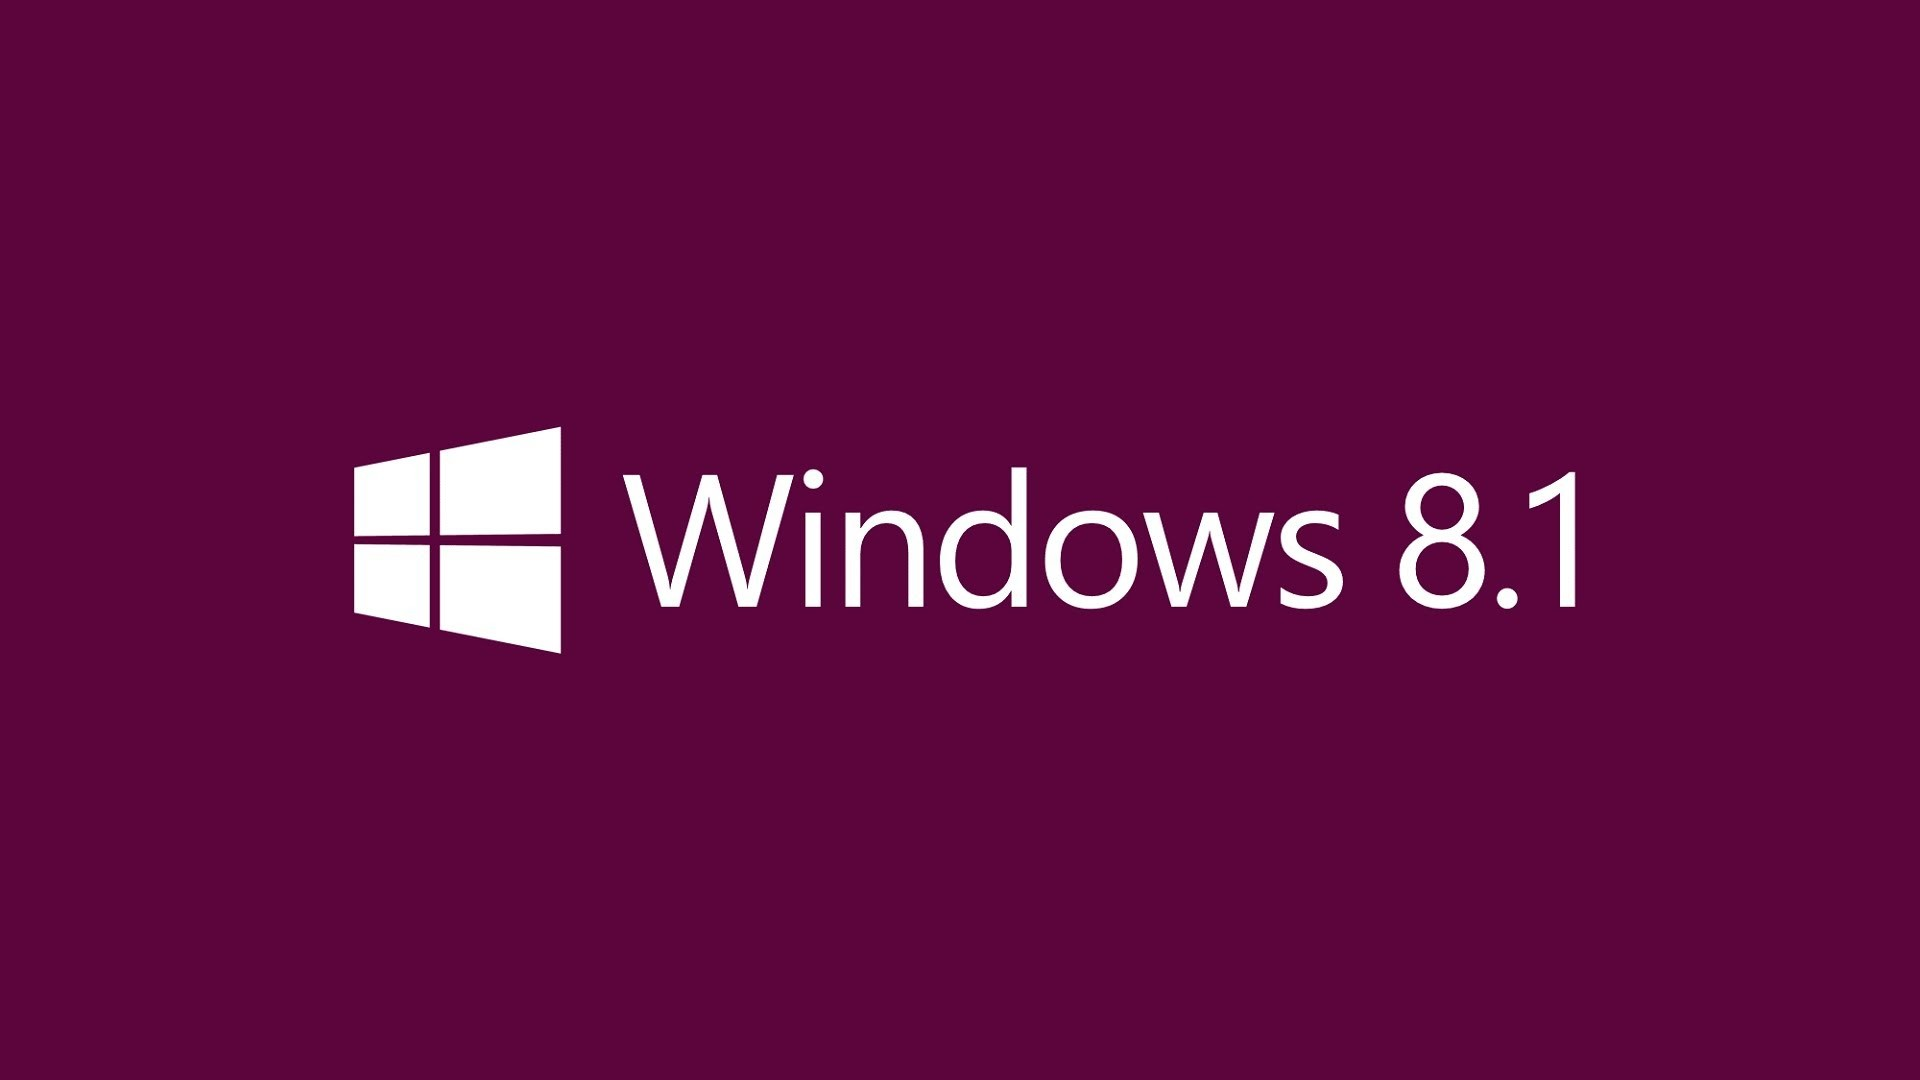 Windows-8.1-HD-Wallpapers Free Download